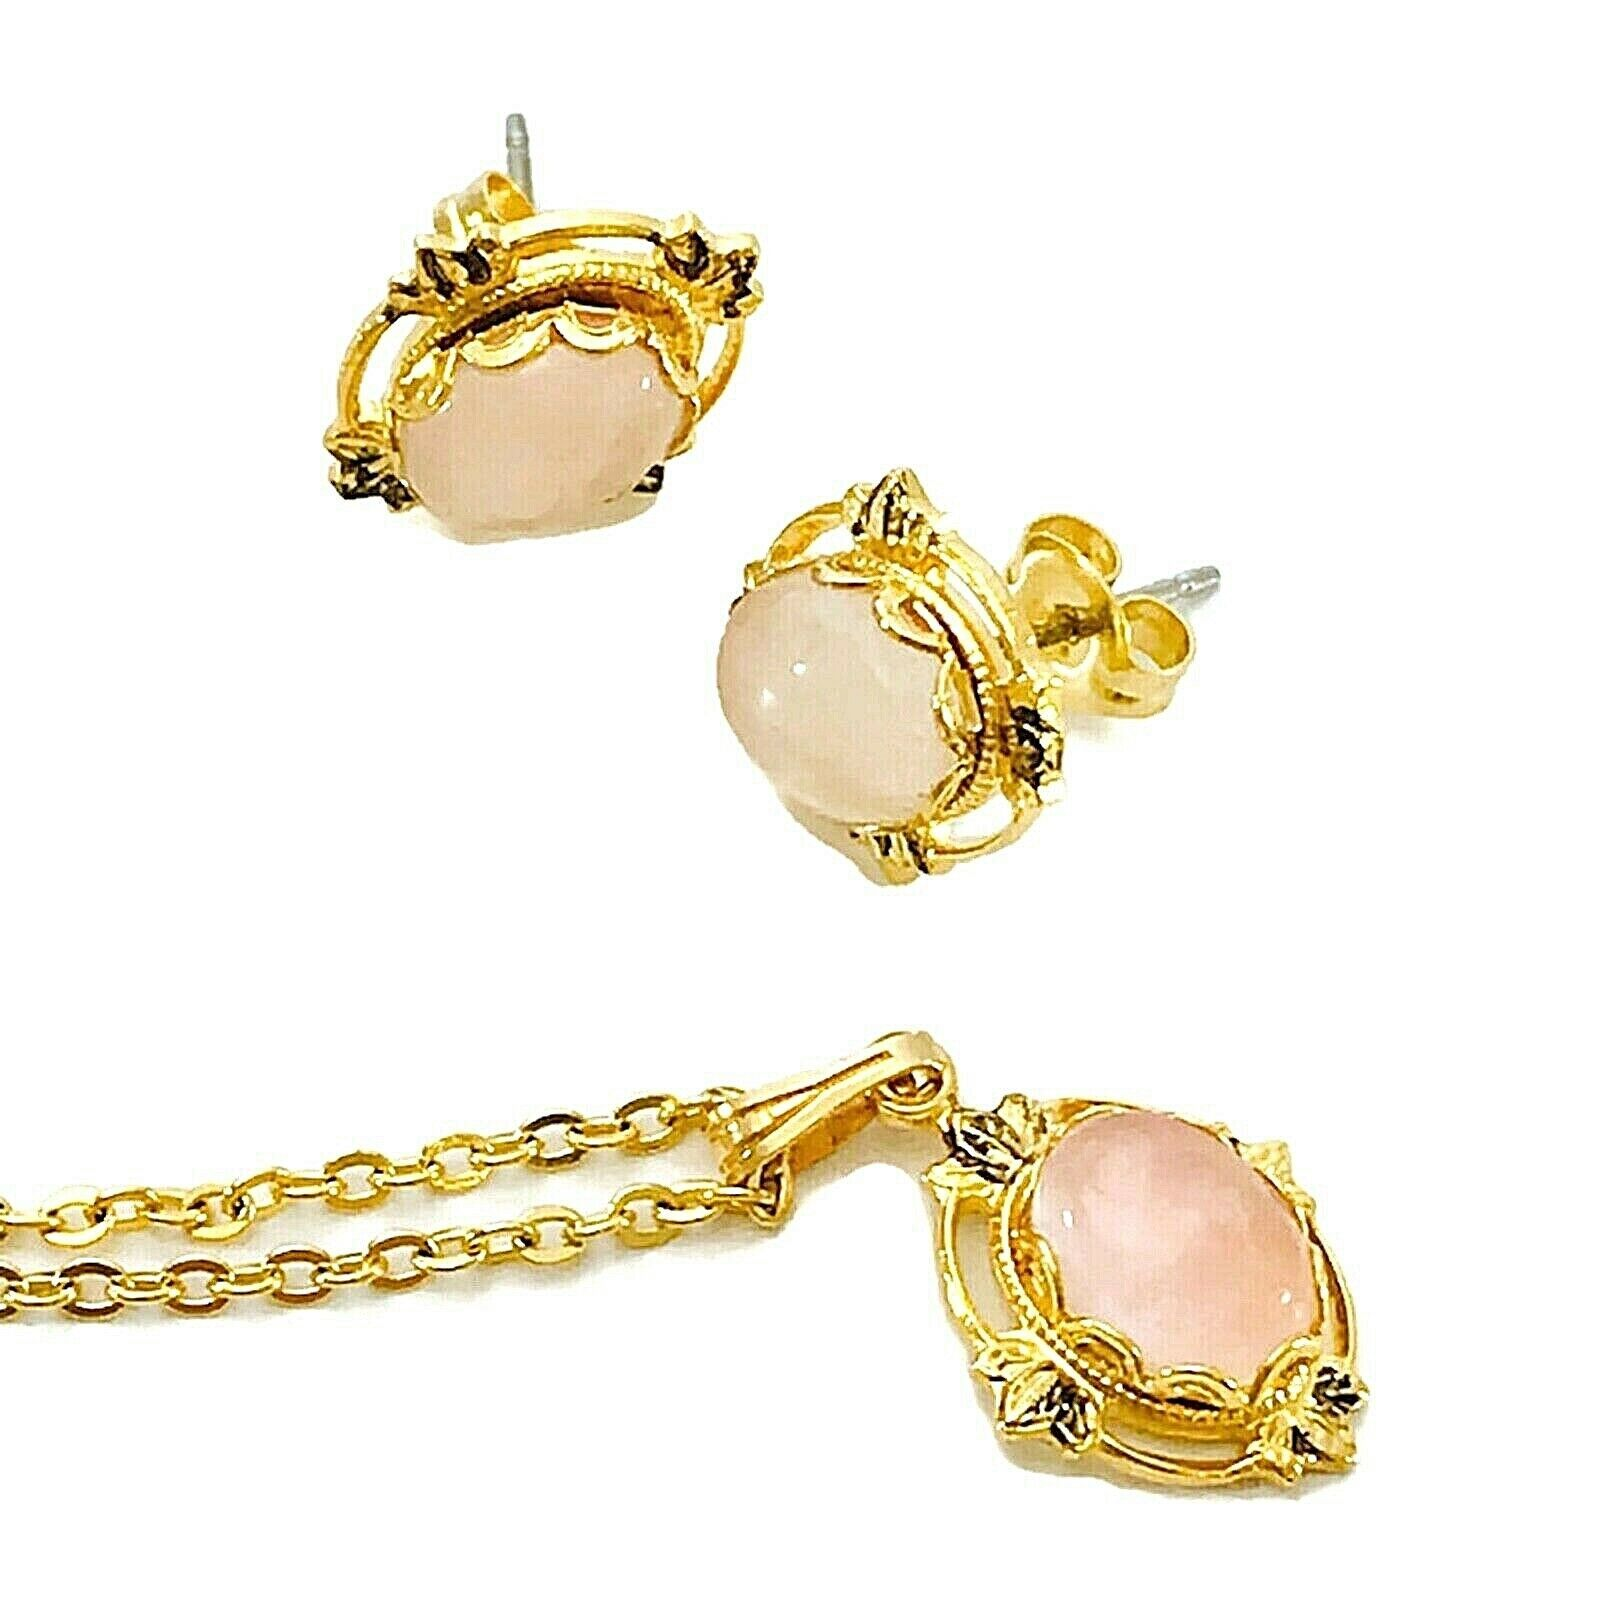 Primary image for Vintage Pink Jadeite Stone Earrings & Necklace Parure set in Gold-tone setting